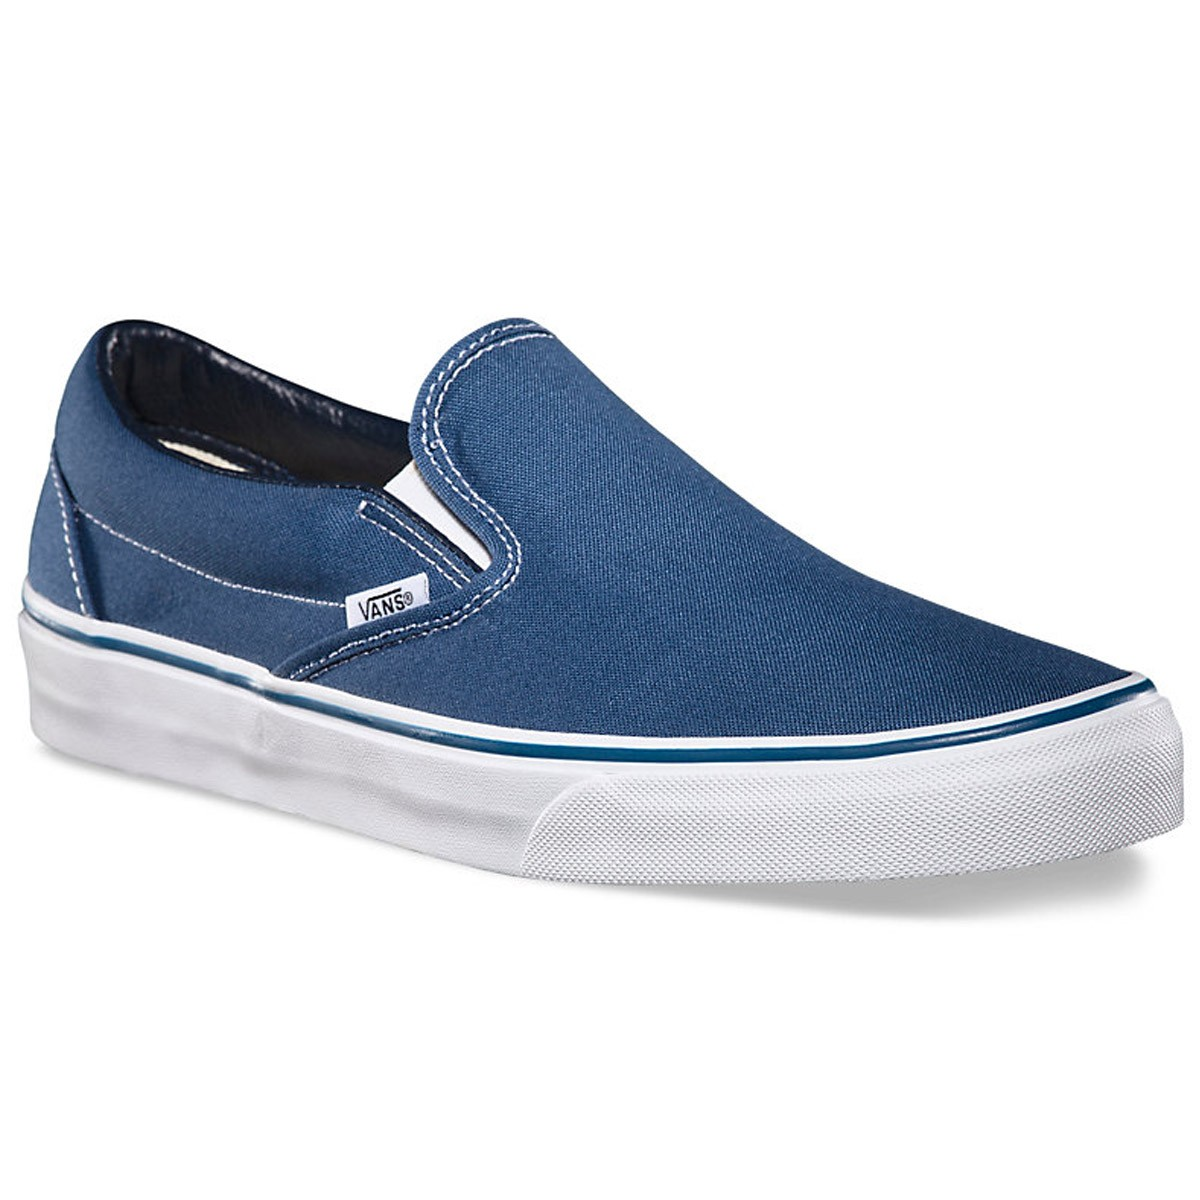 Vans Classic Slip-On Shoes - Navy